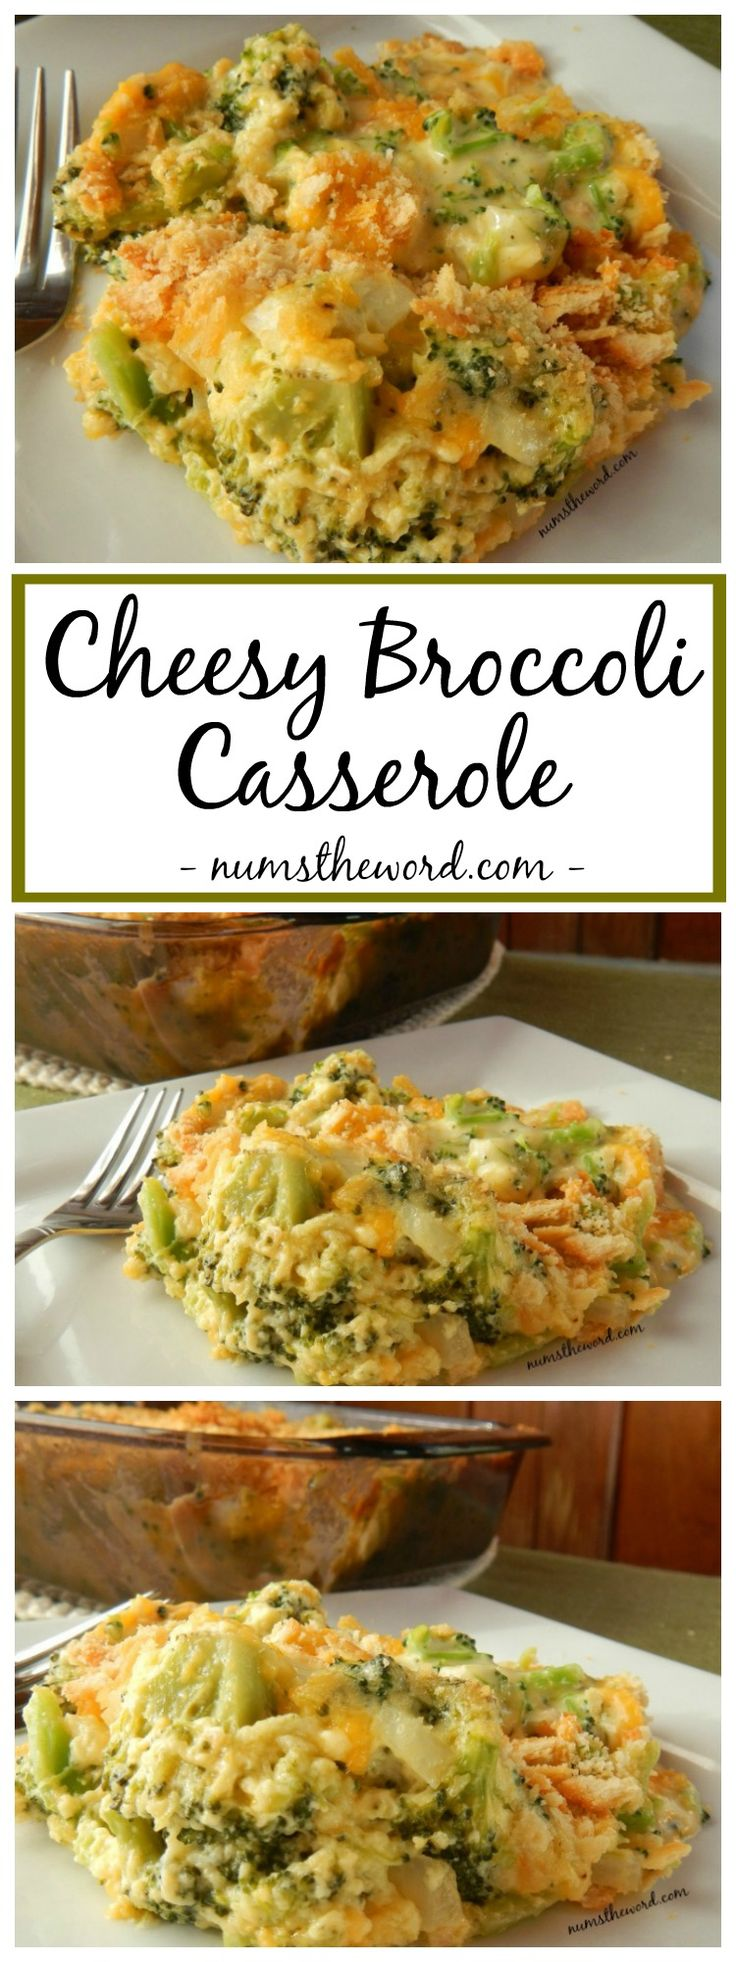 What are the best recipes for vegetable casserole?